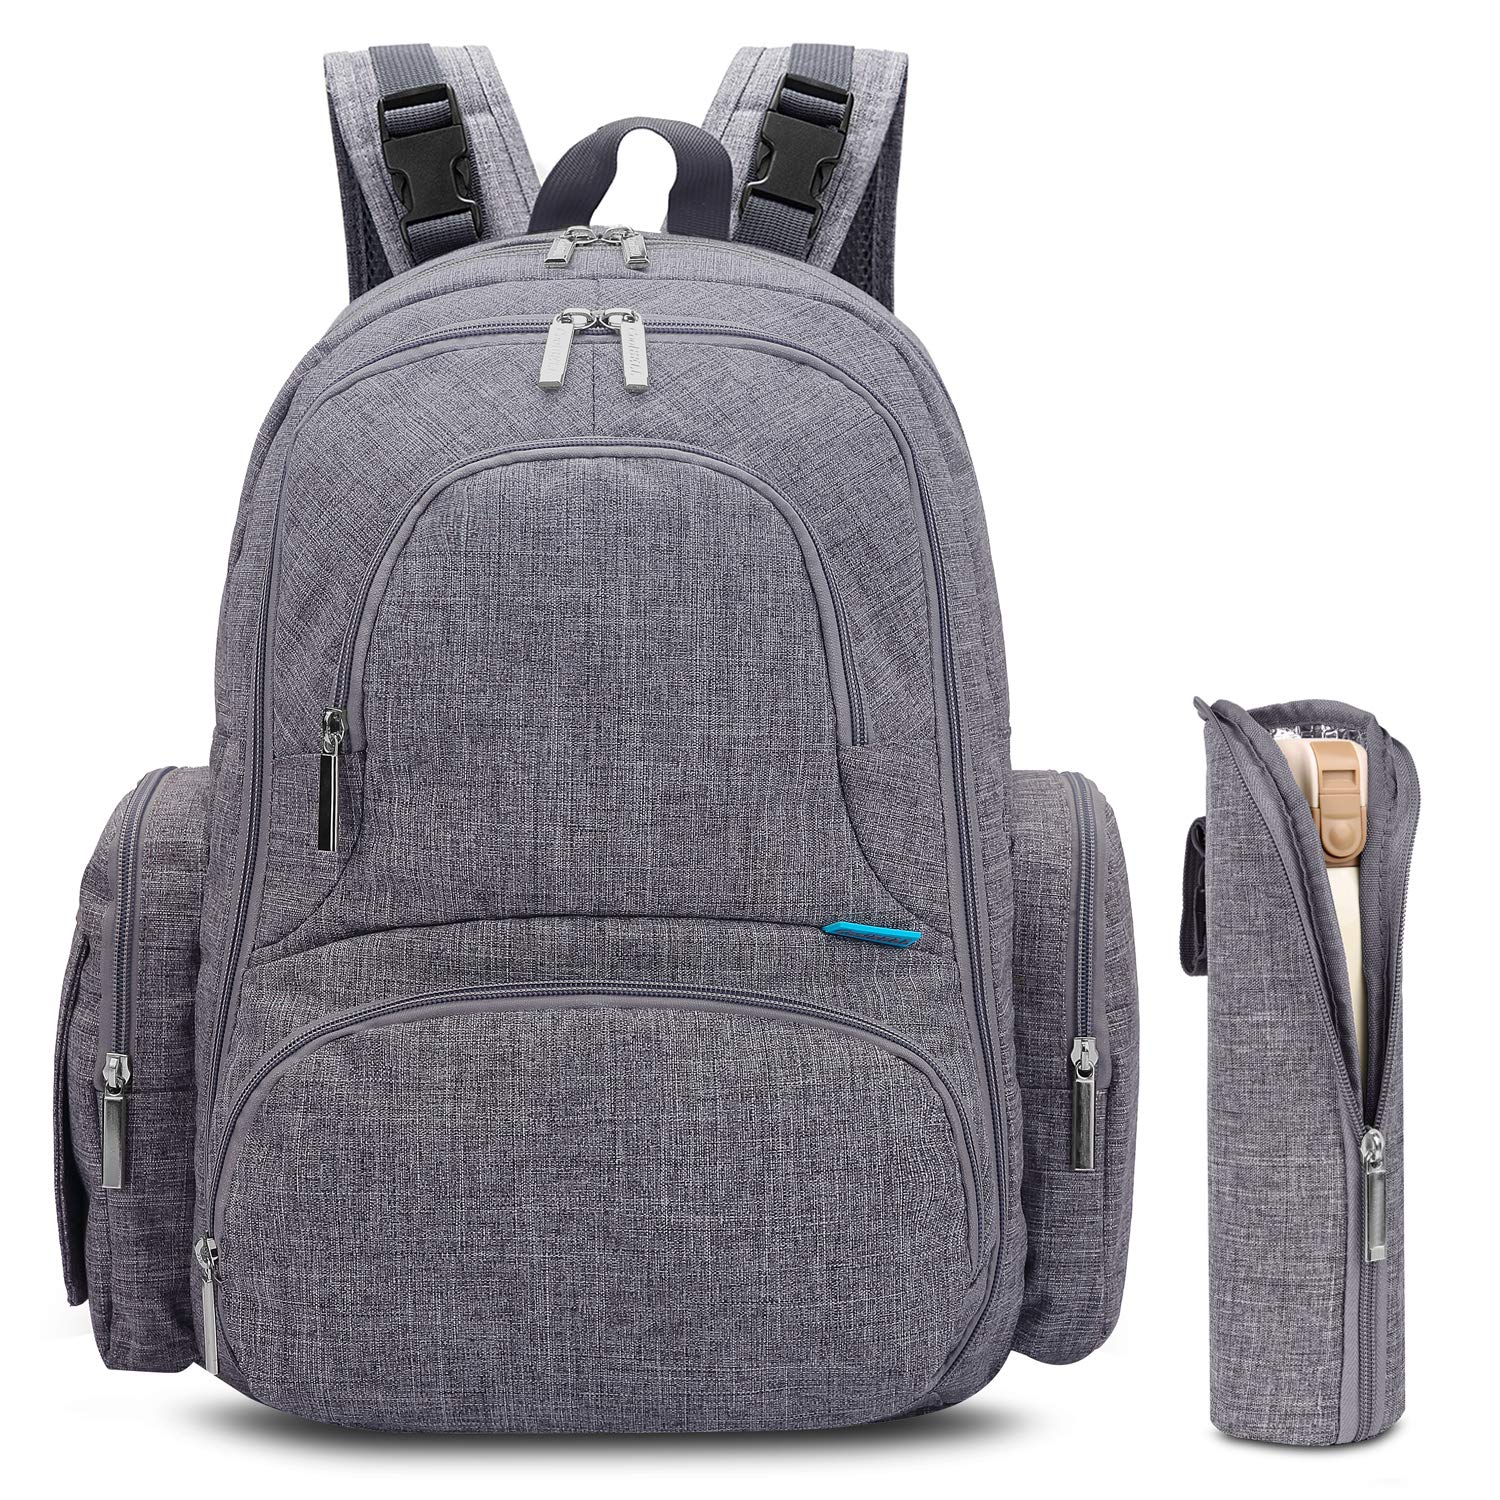 CoolBELL Diaper Backpack With Insulated Pockets/Large Size Water-resistant Bag/Multi-functional Travel Knapsack Include Pad (Grey)